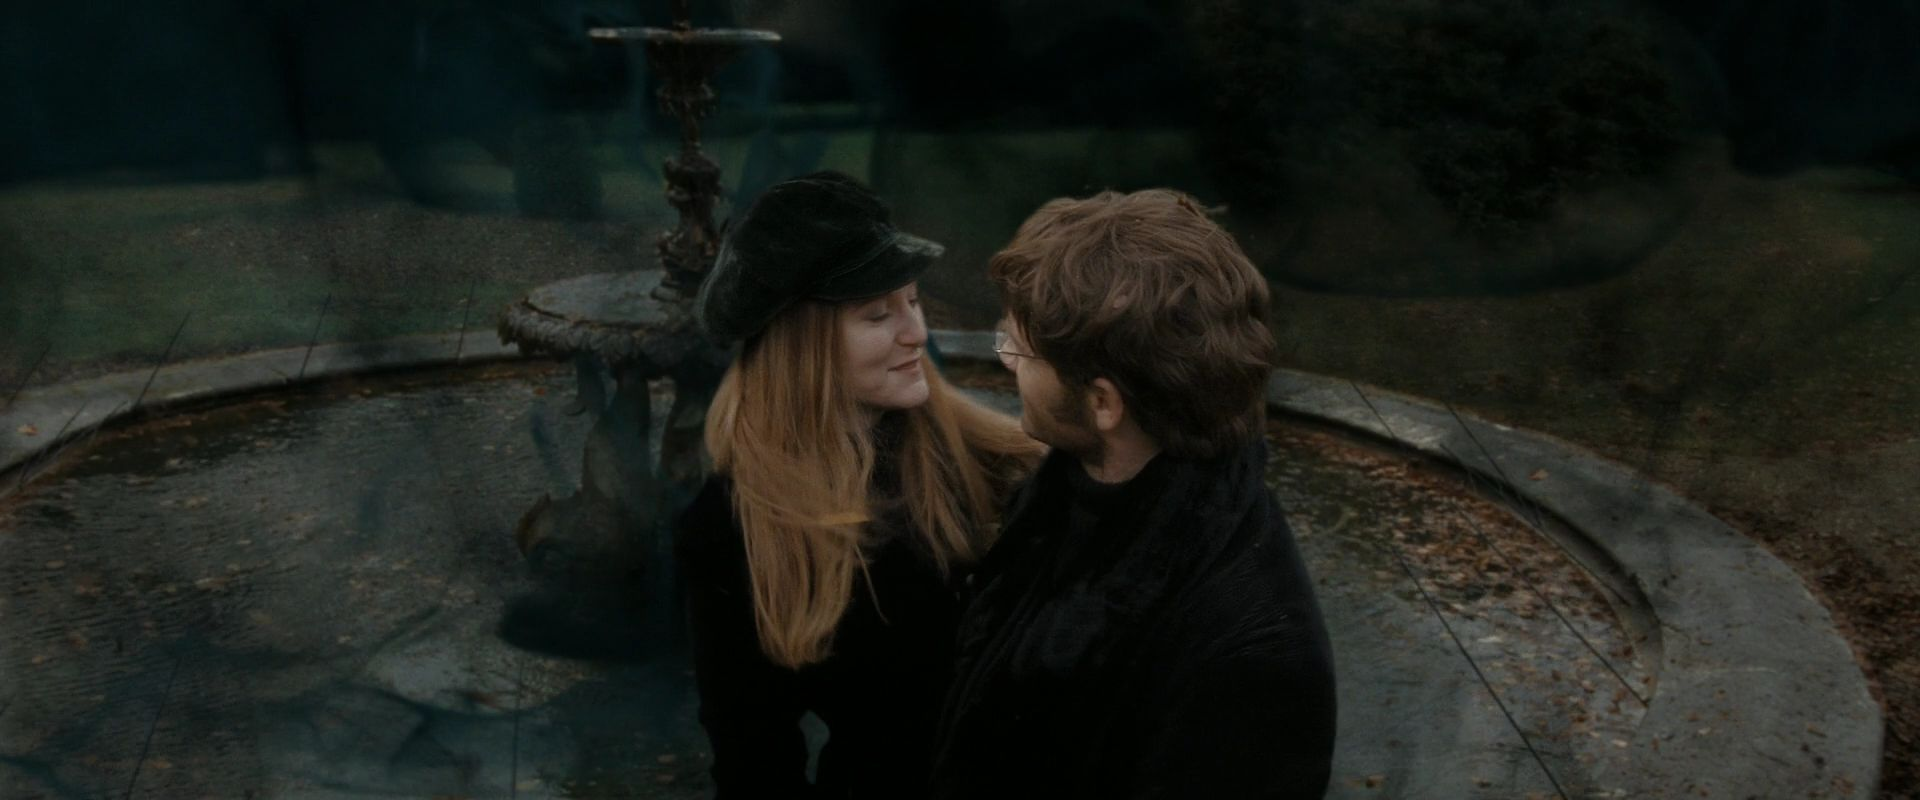 Lily and James Potter images Harry Potter 7: Deathly ...